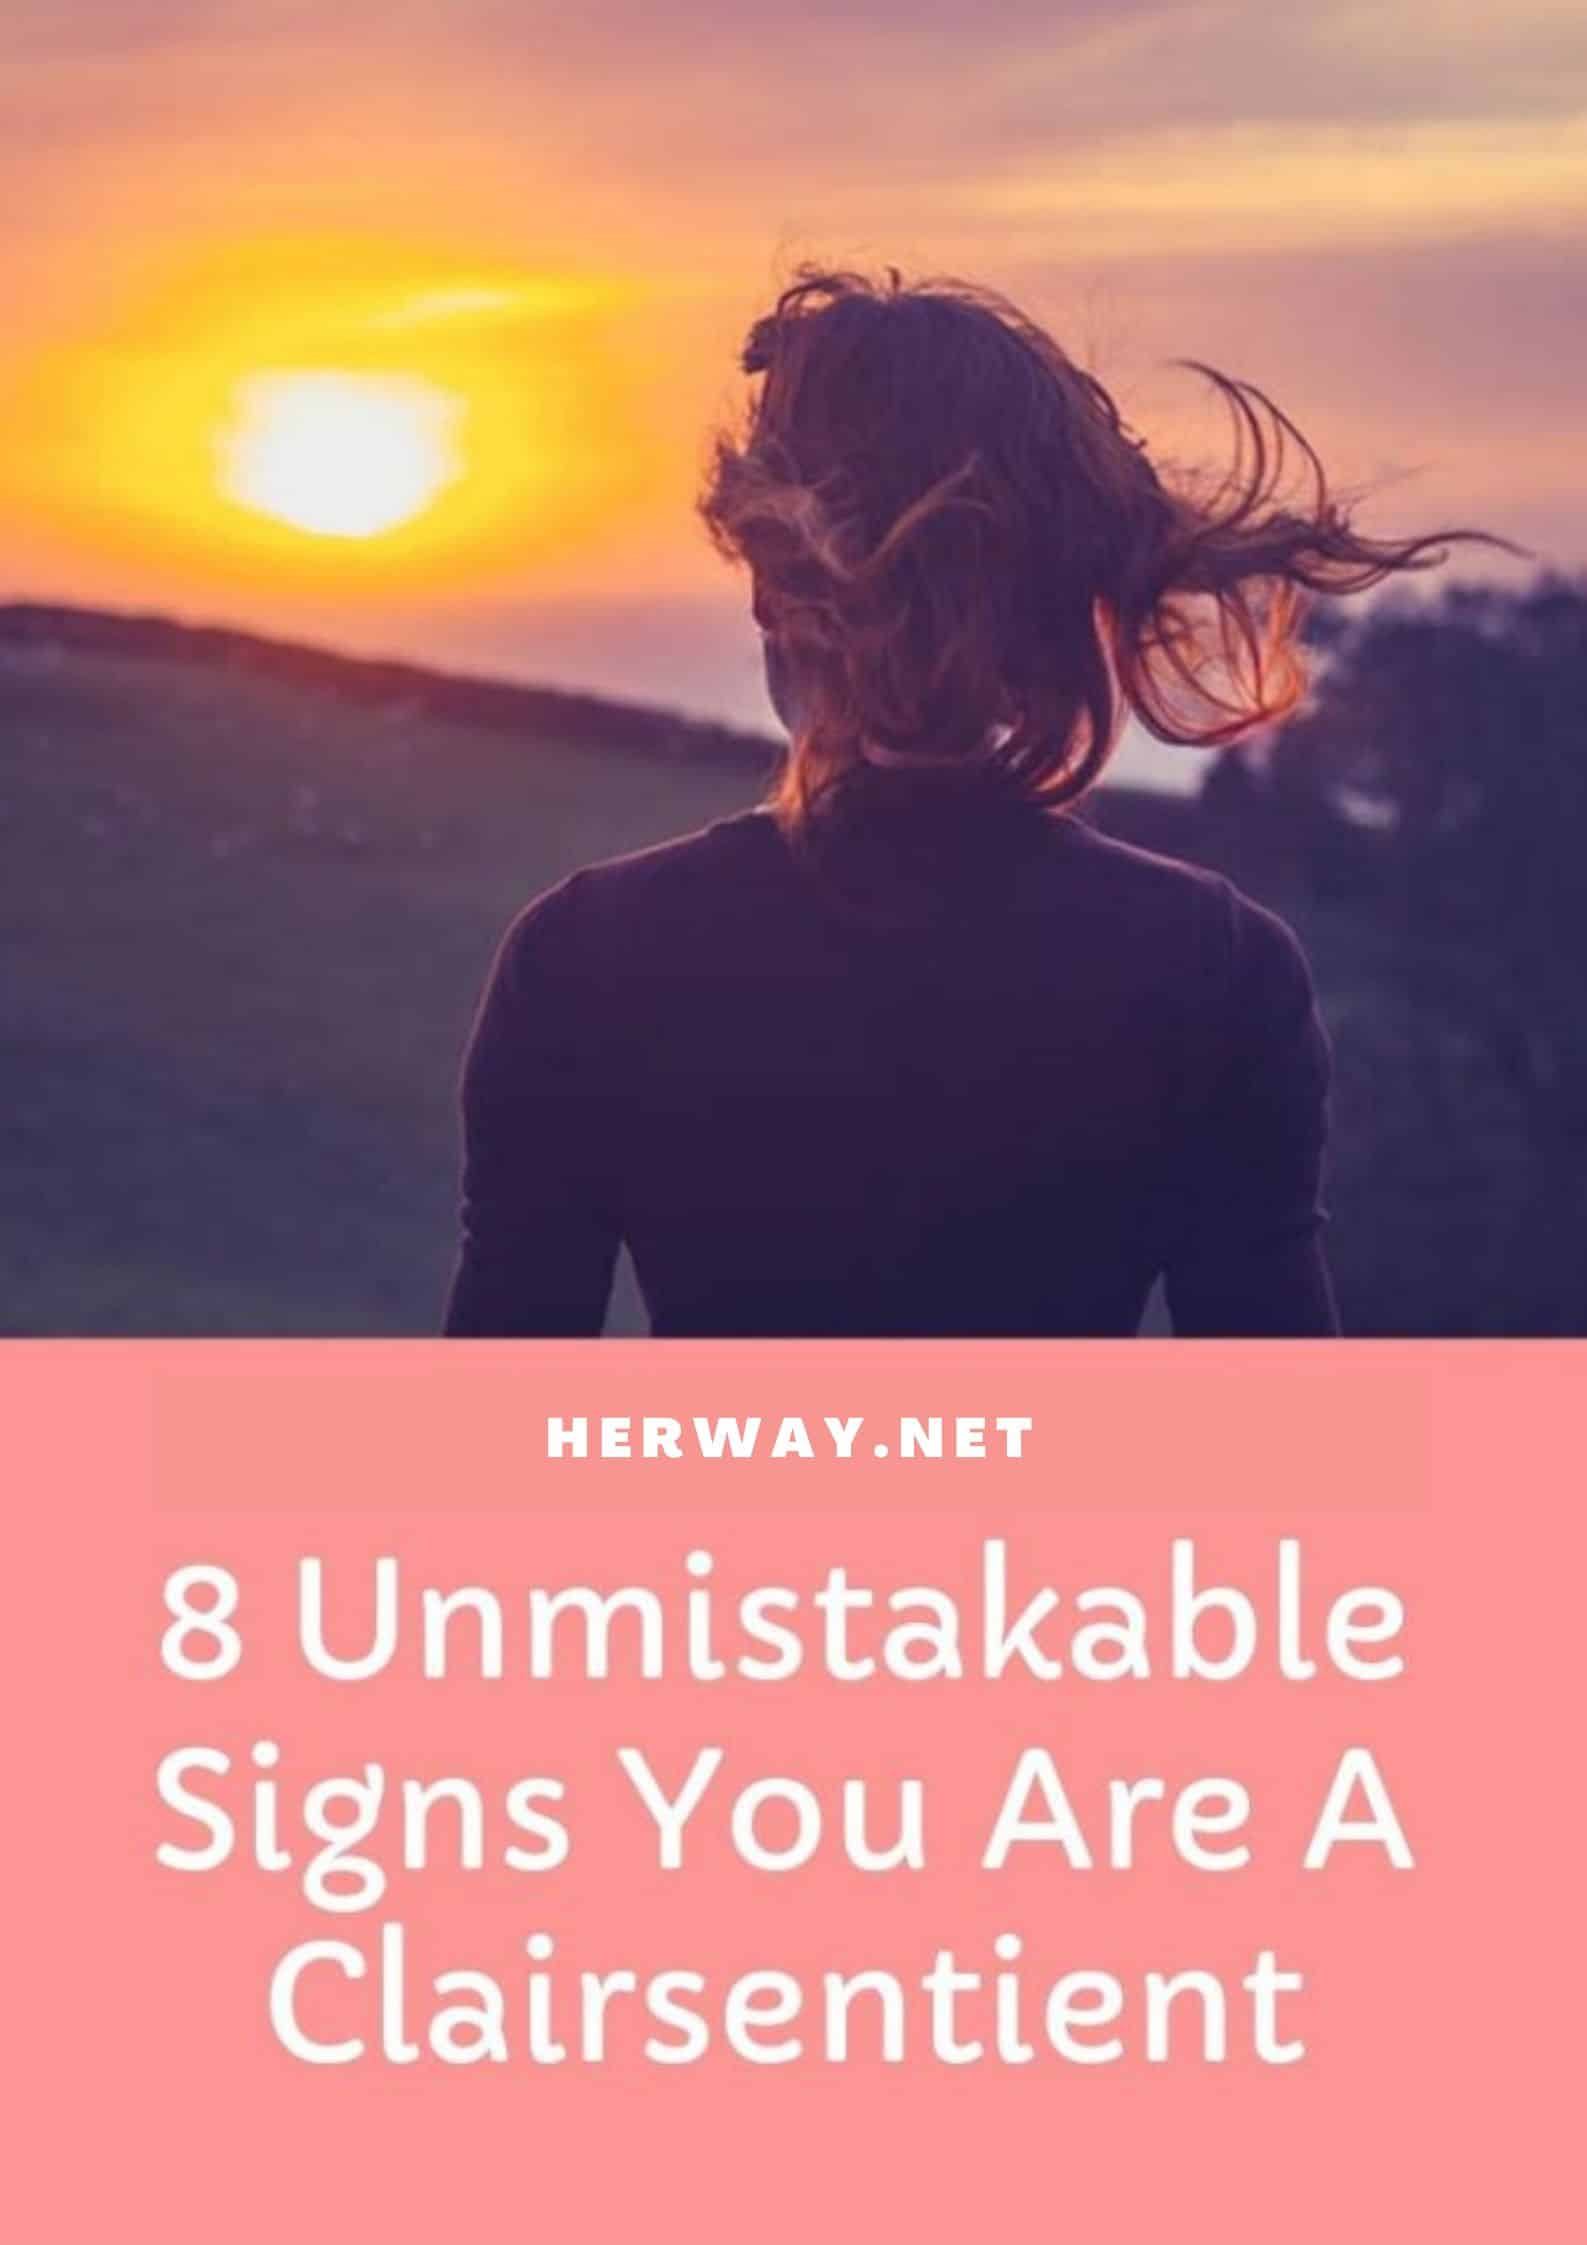 8 Unmistakable Signs You Are A Clairsentient